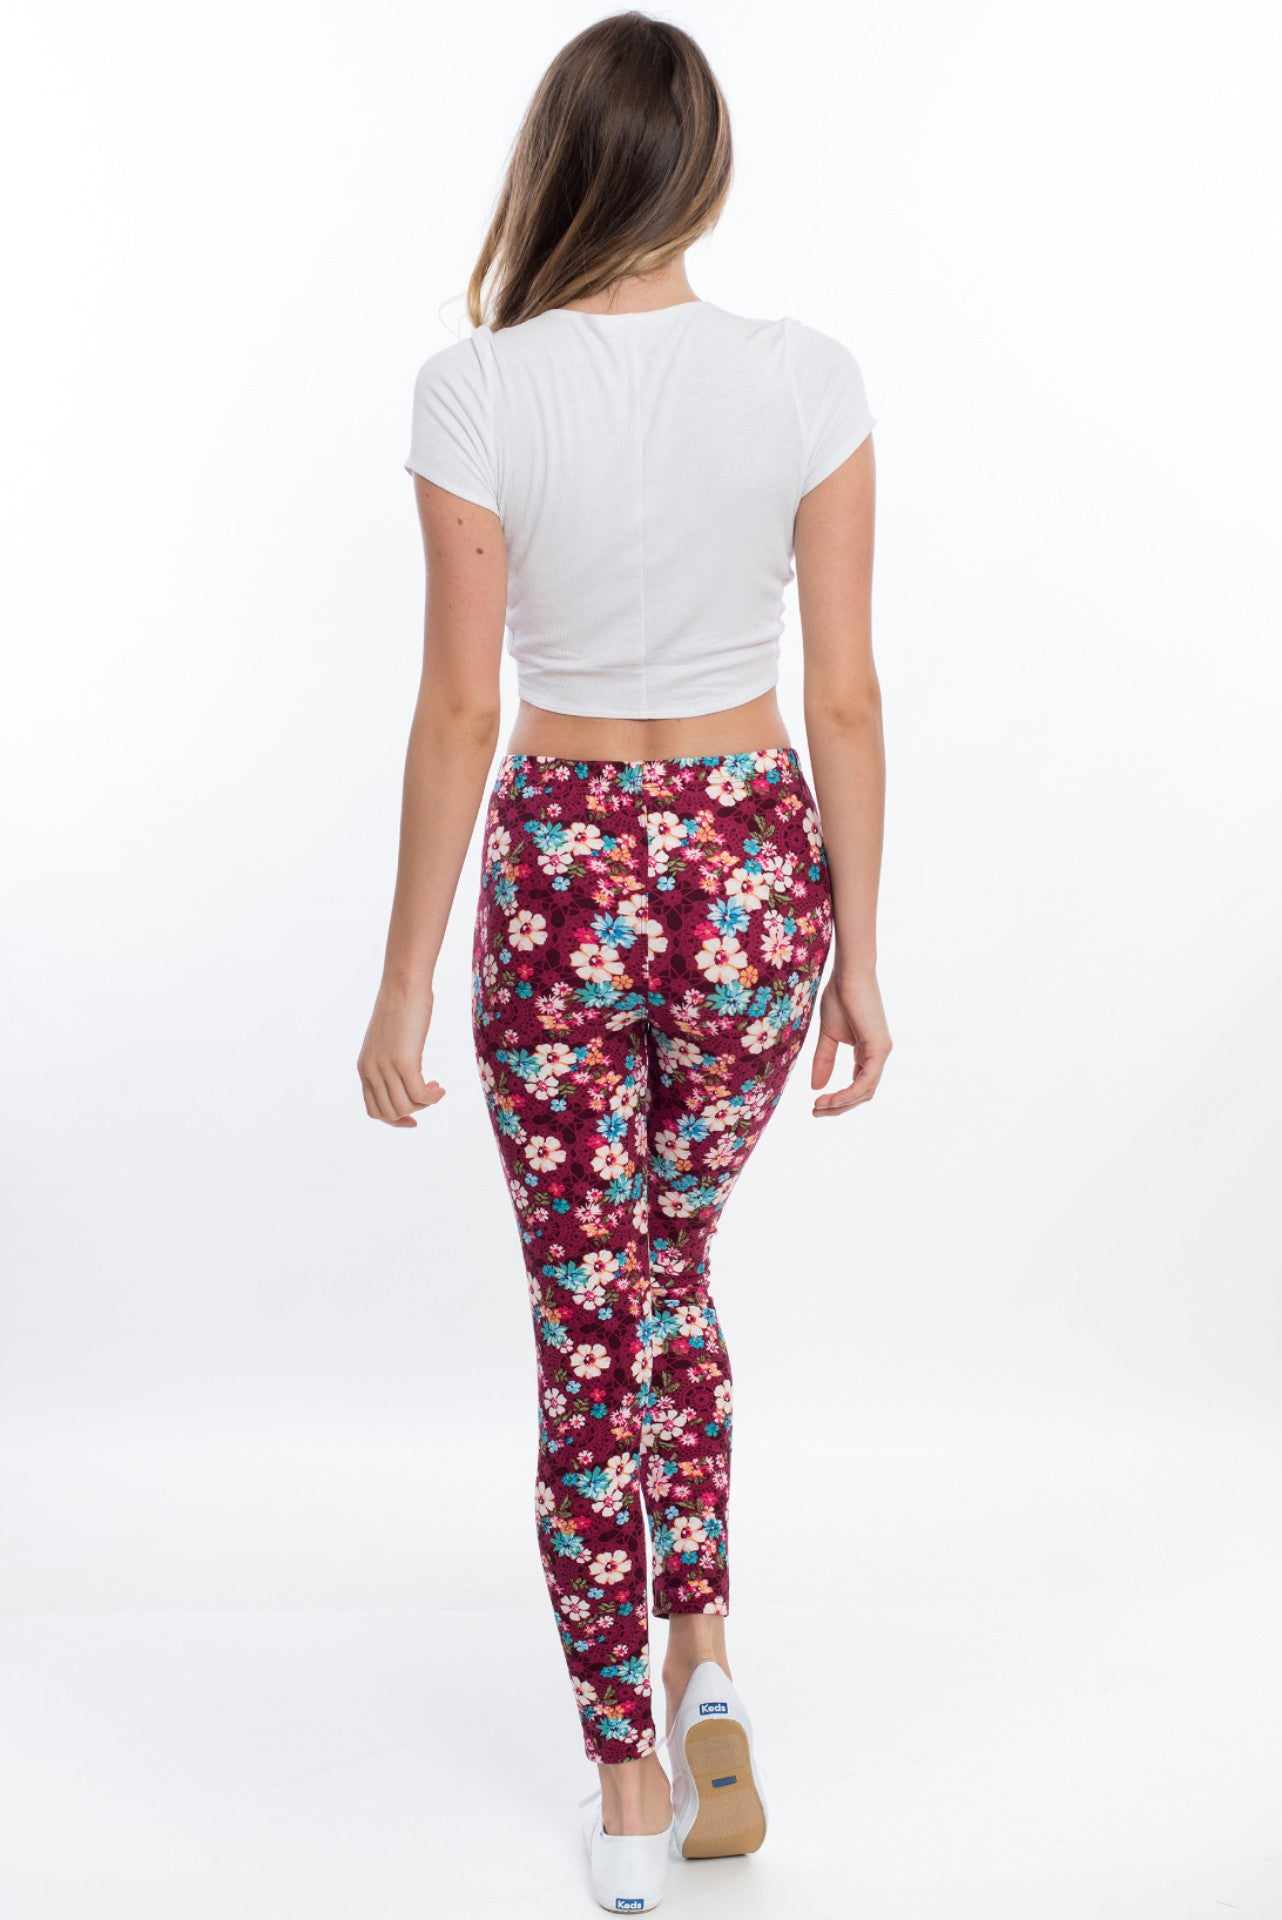 Booty Love Leggings - Wine Floral